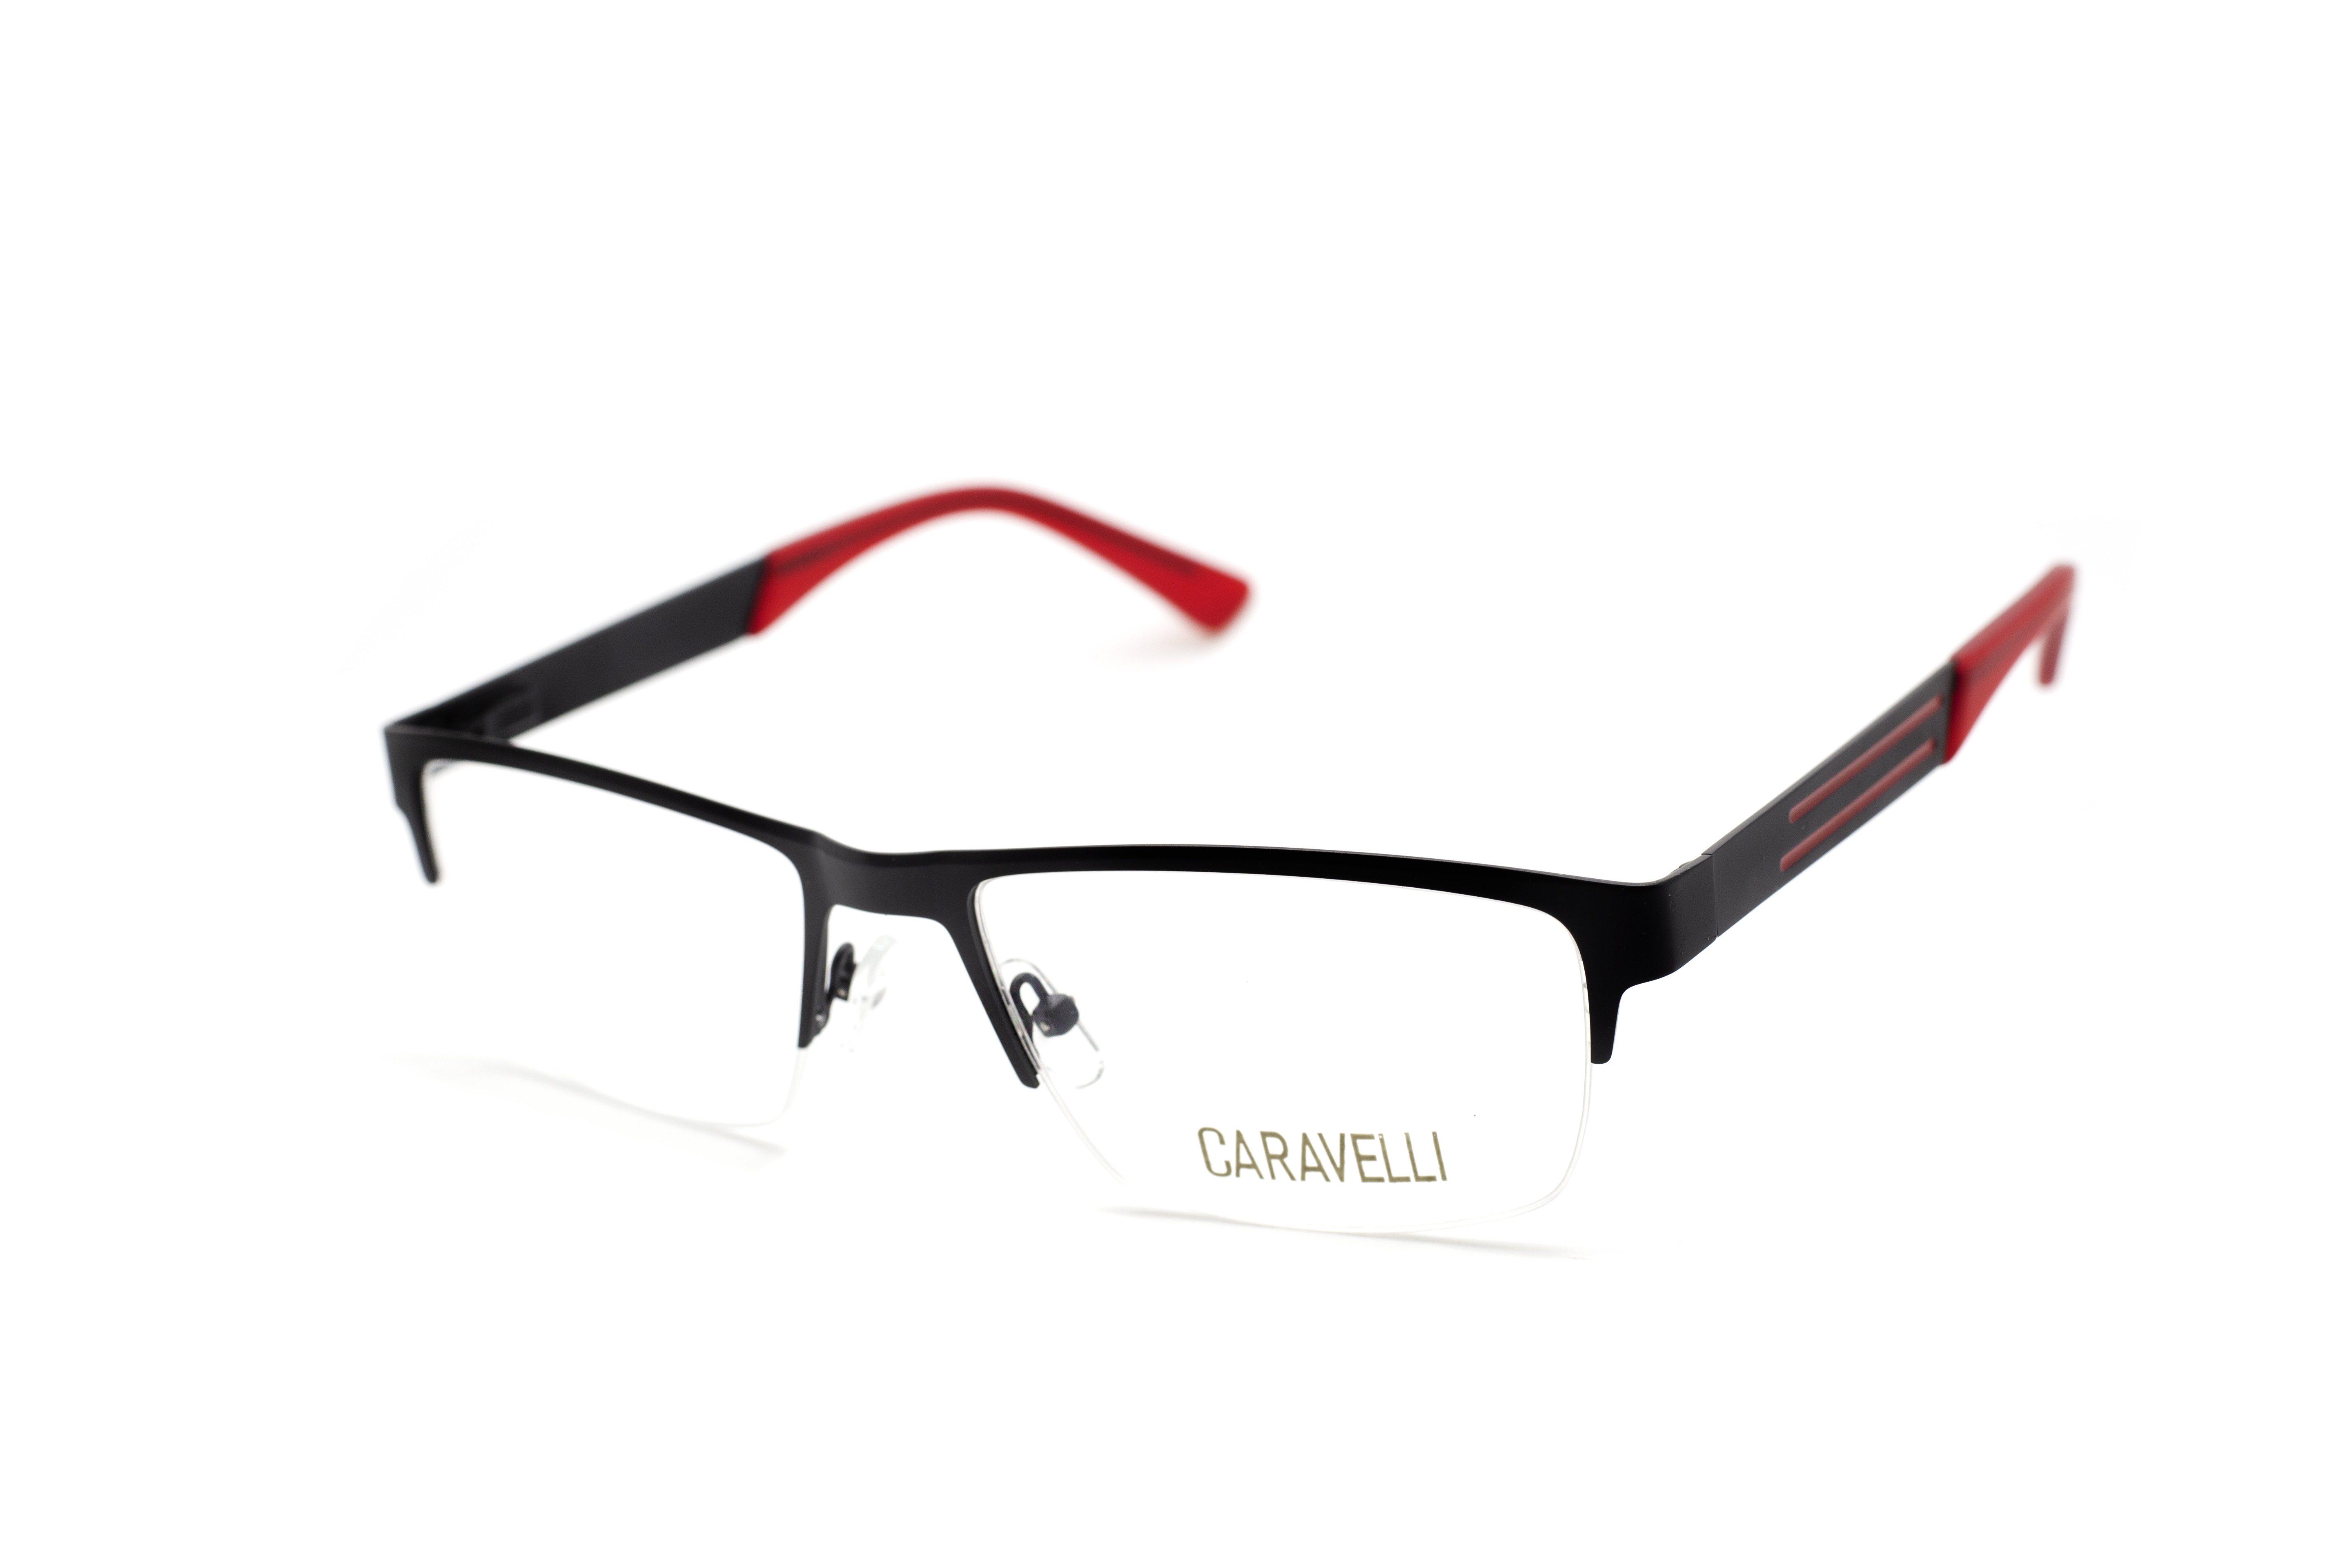 Caravelli 209 - Red (2 - MATT BLACK / RED)